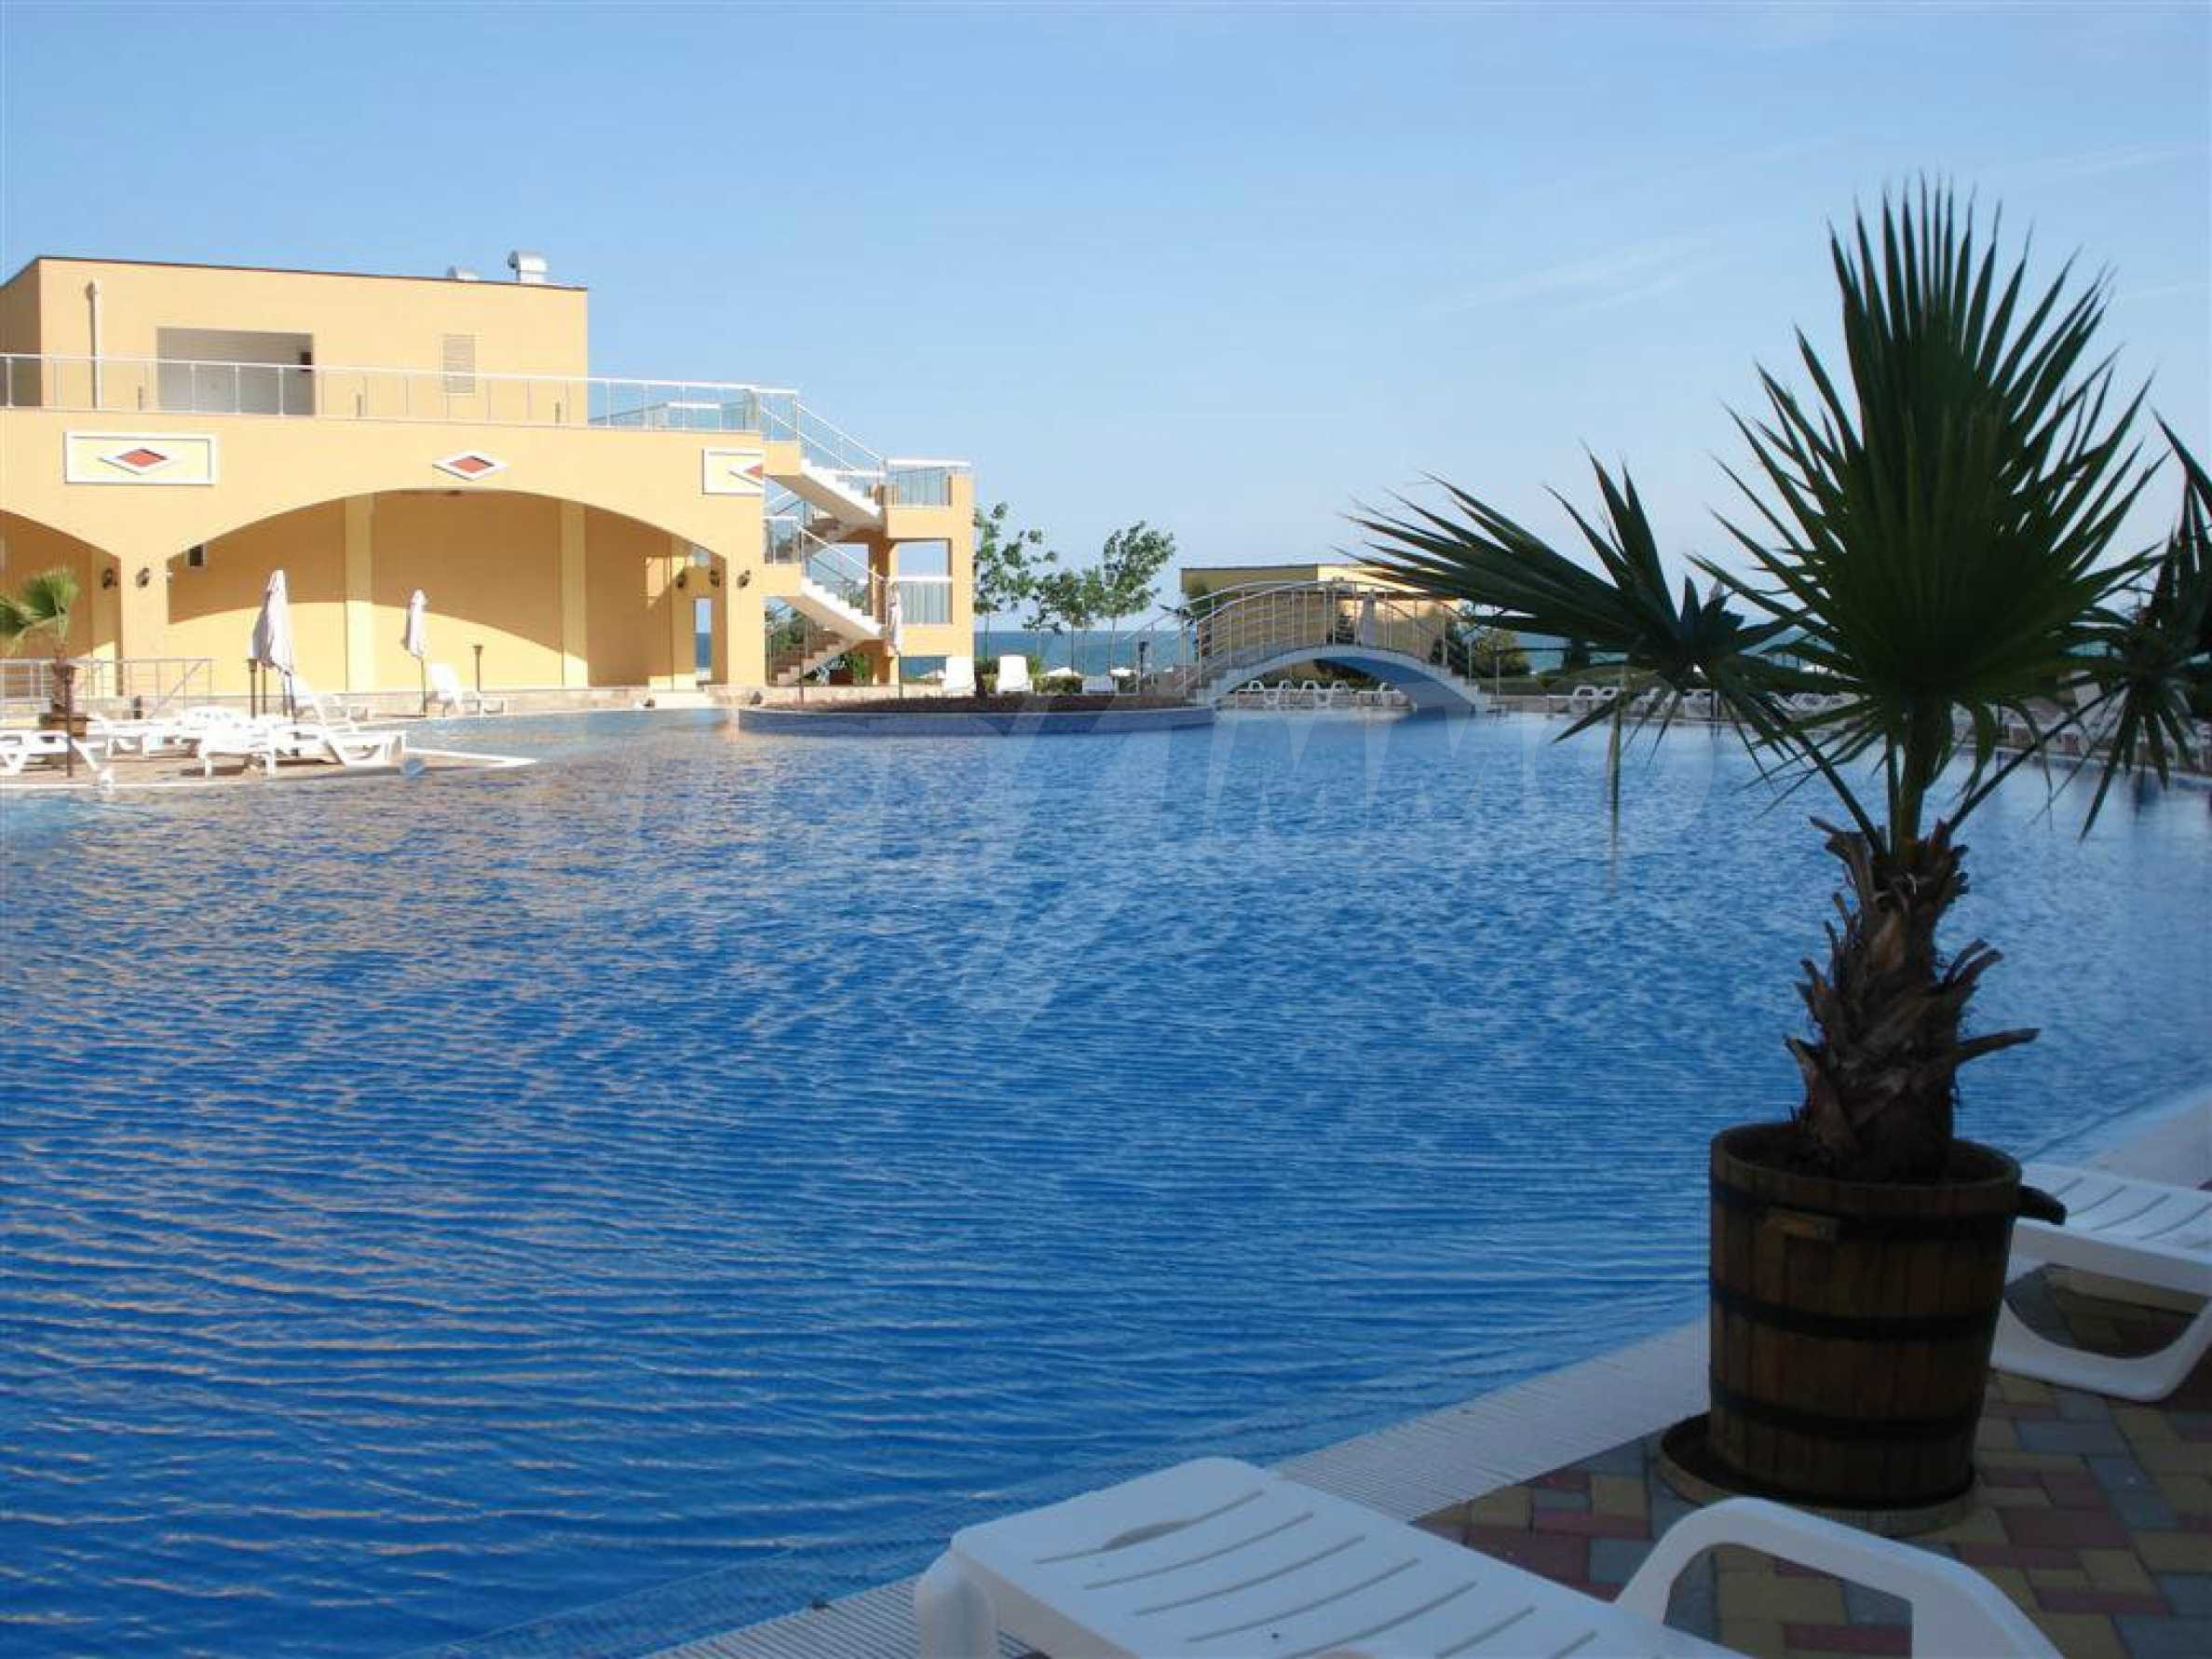 Studio for sale in Midia Grand Resort in Aheloy 10